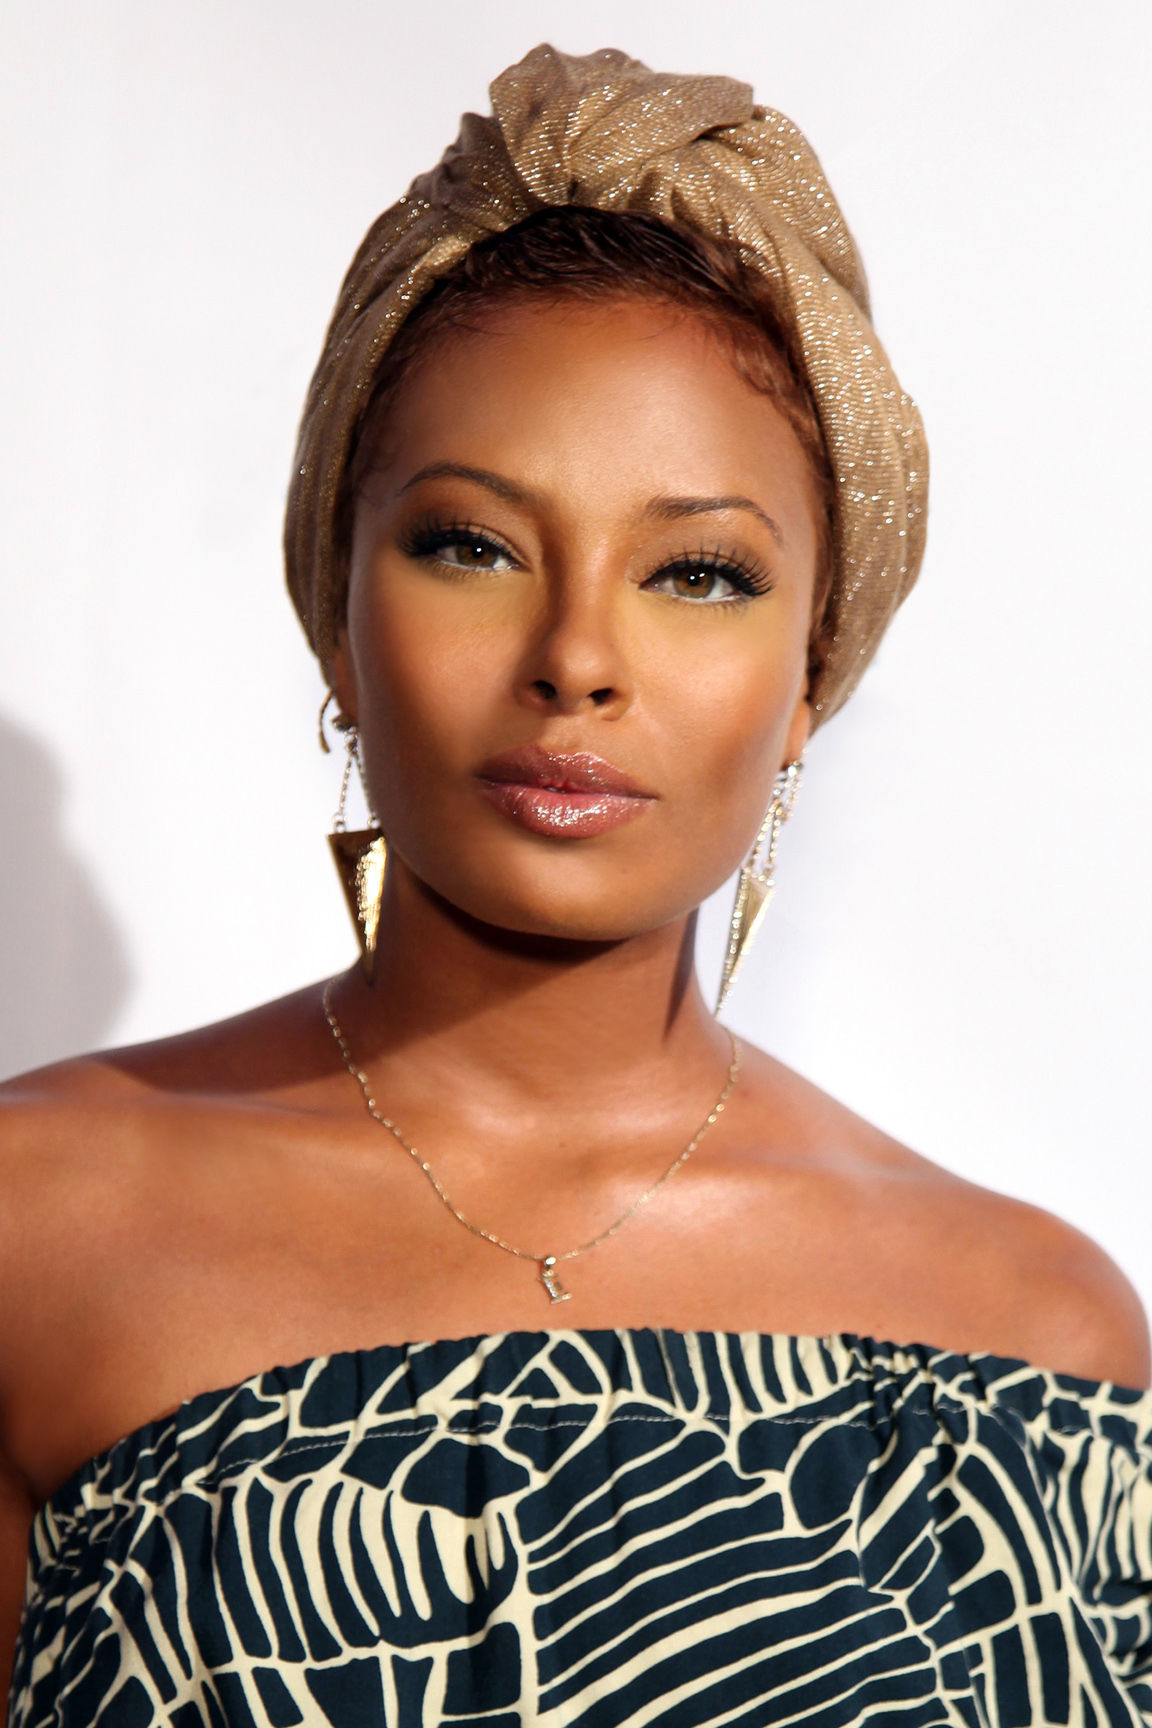 Photo of Eva Marcille: American model and actress